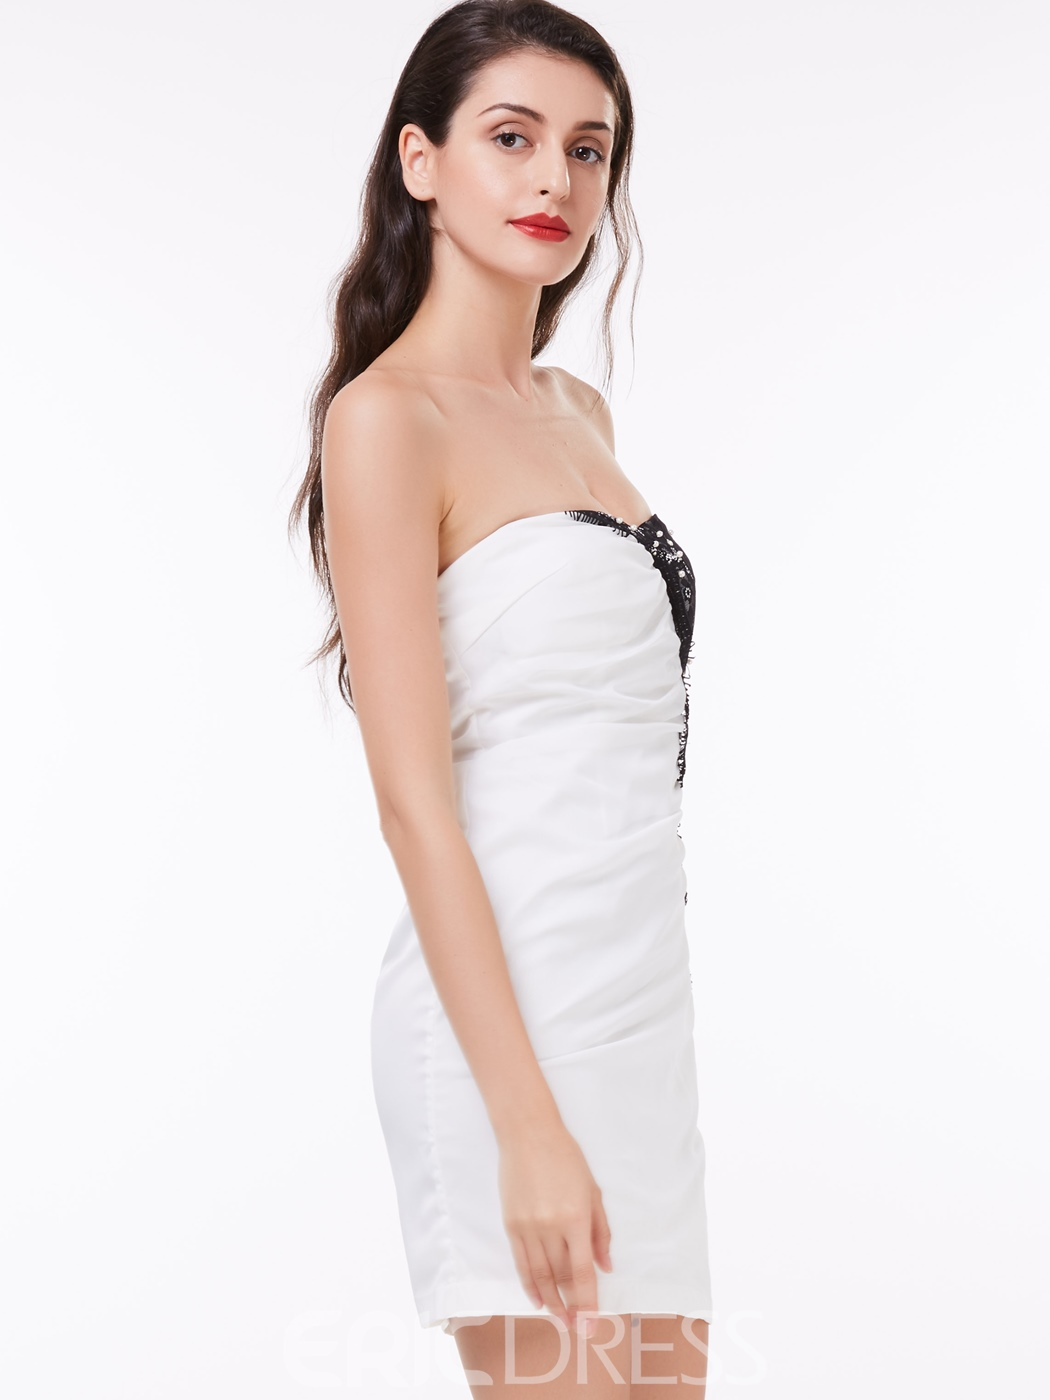 Ericdress Sexy Sheath Strapless Applique Short/Mini Cocktail Dress